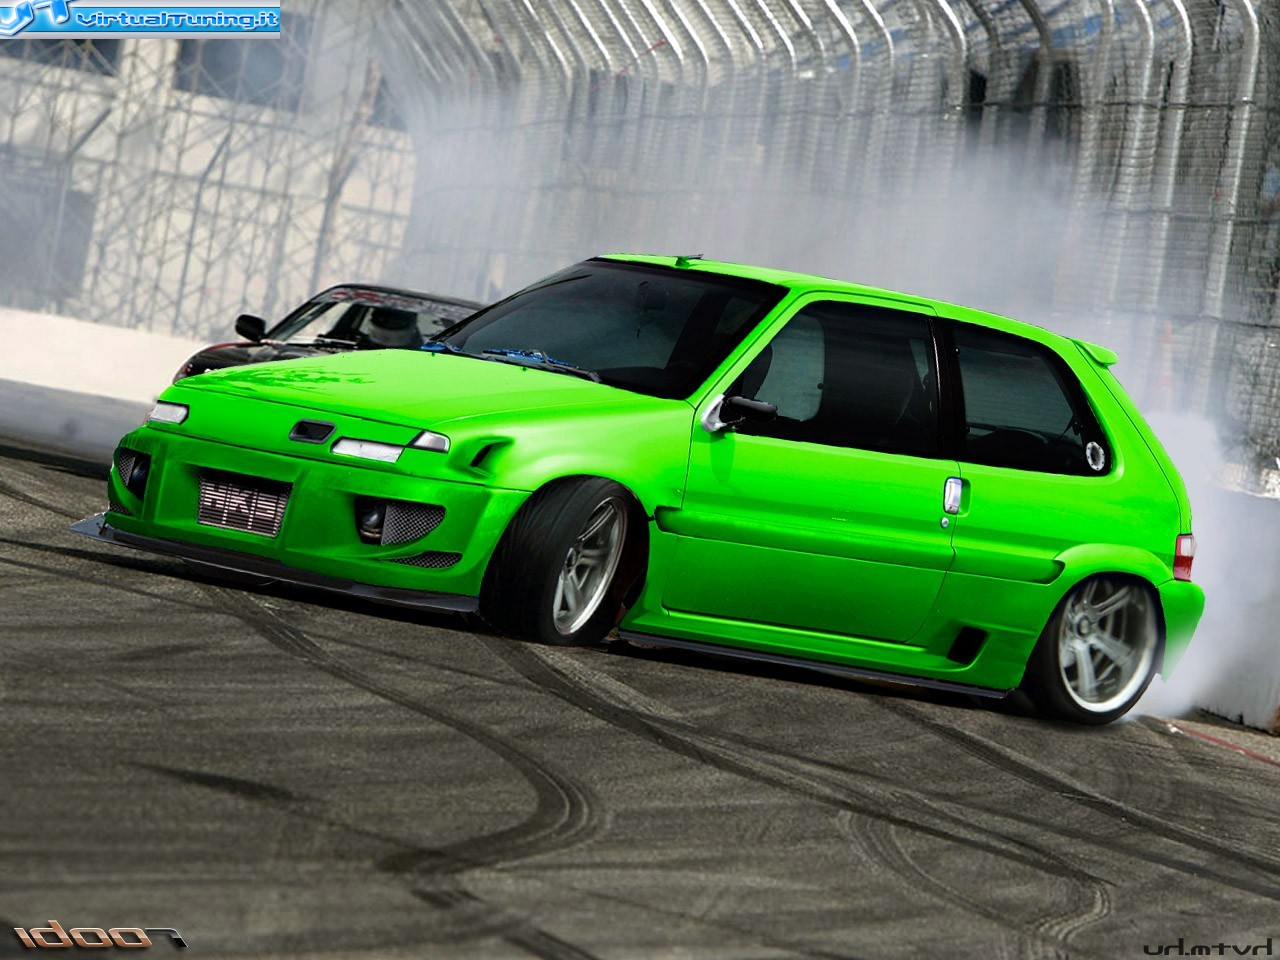 citroen saxo vts by franz 297 virtualtuning it. Black Bedroom Furniture Sets. Home Design Ideas